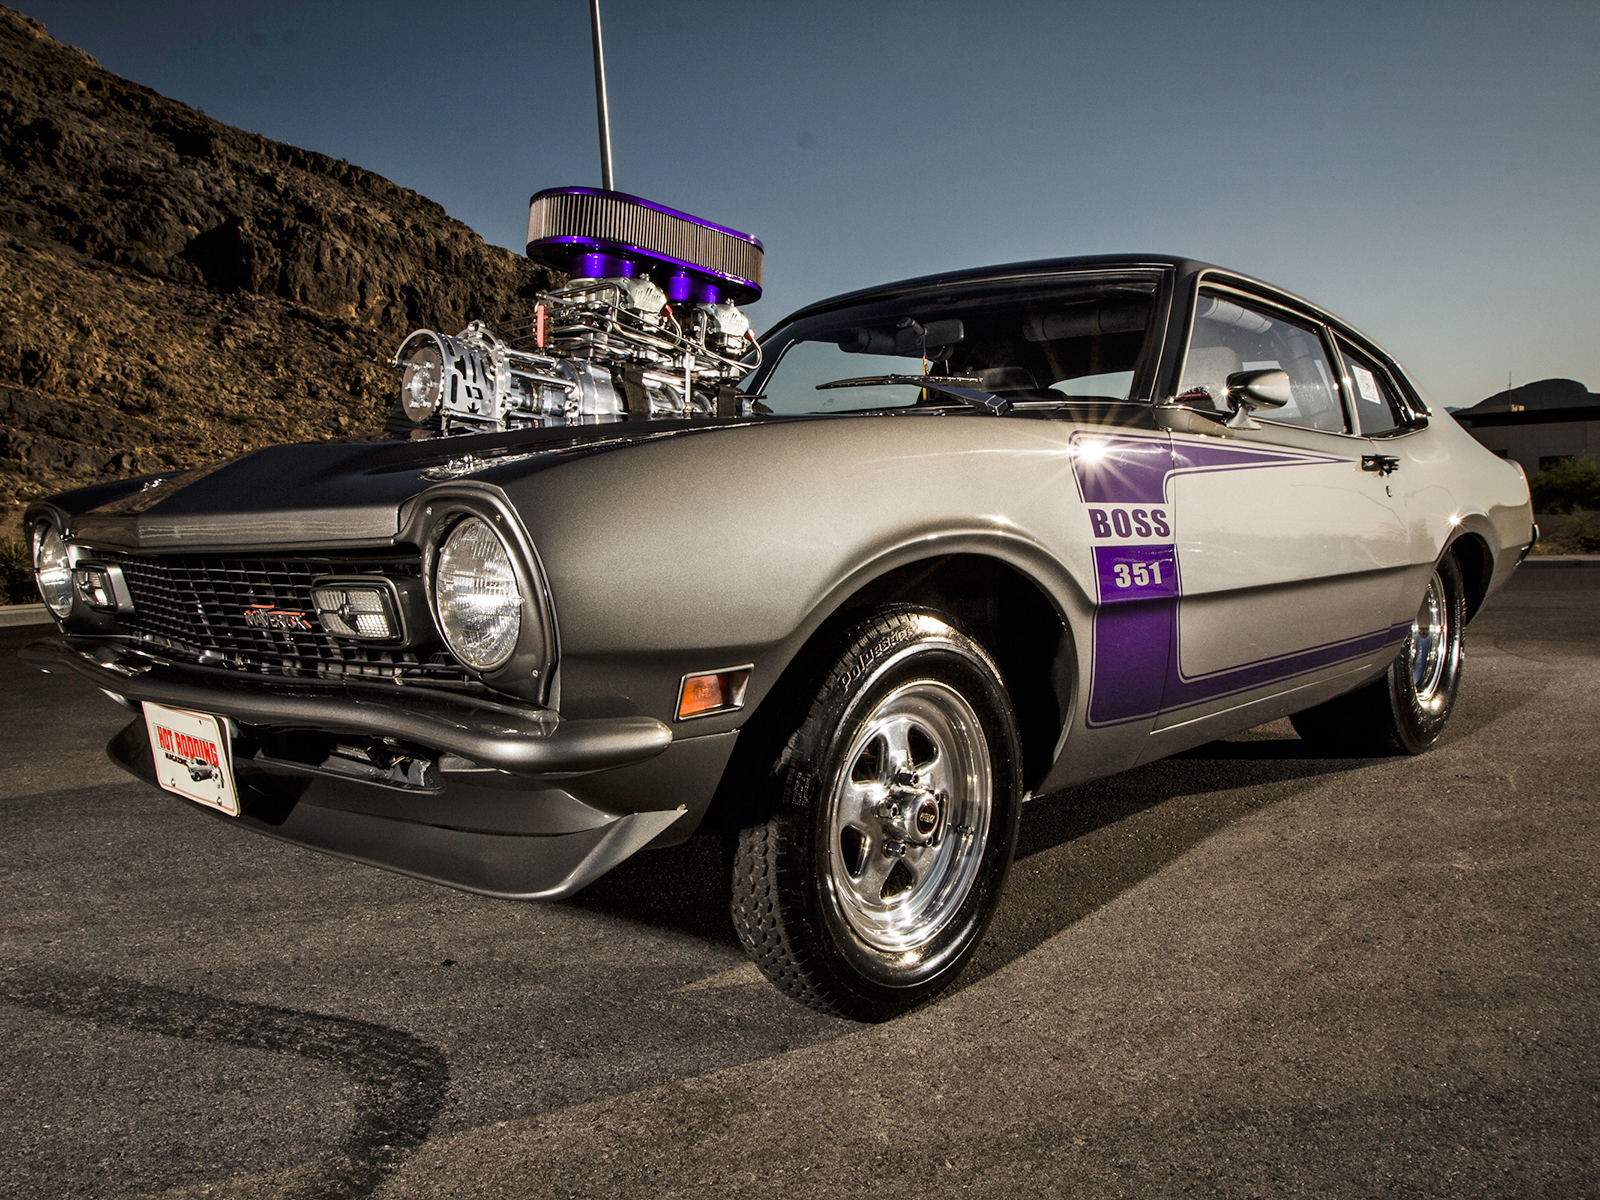 Pro Street Style 1974 Ford Maverick! - Muscle Cars Zone!